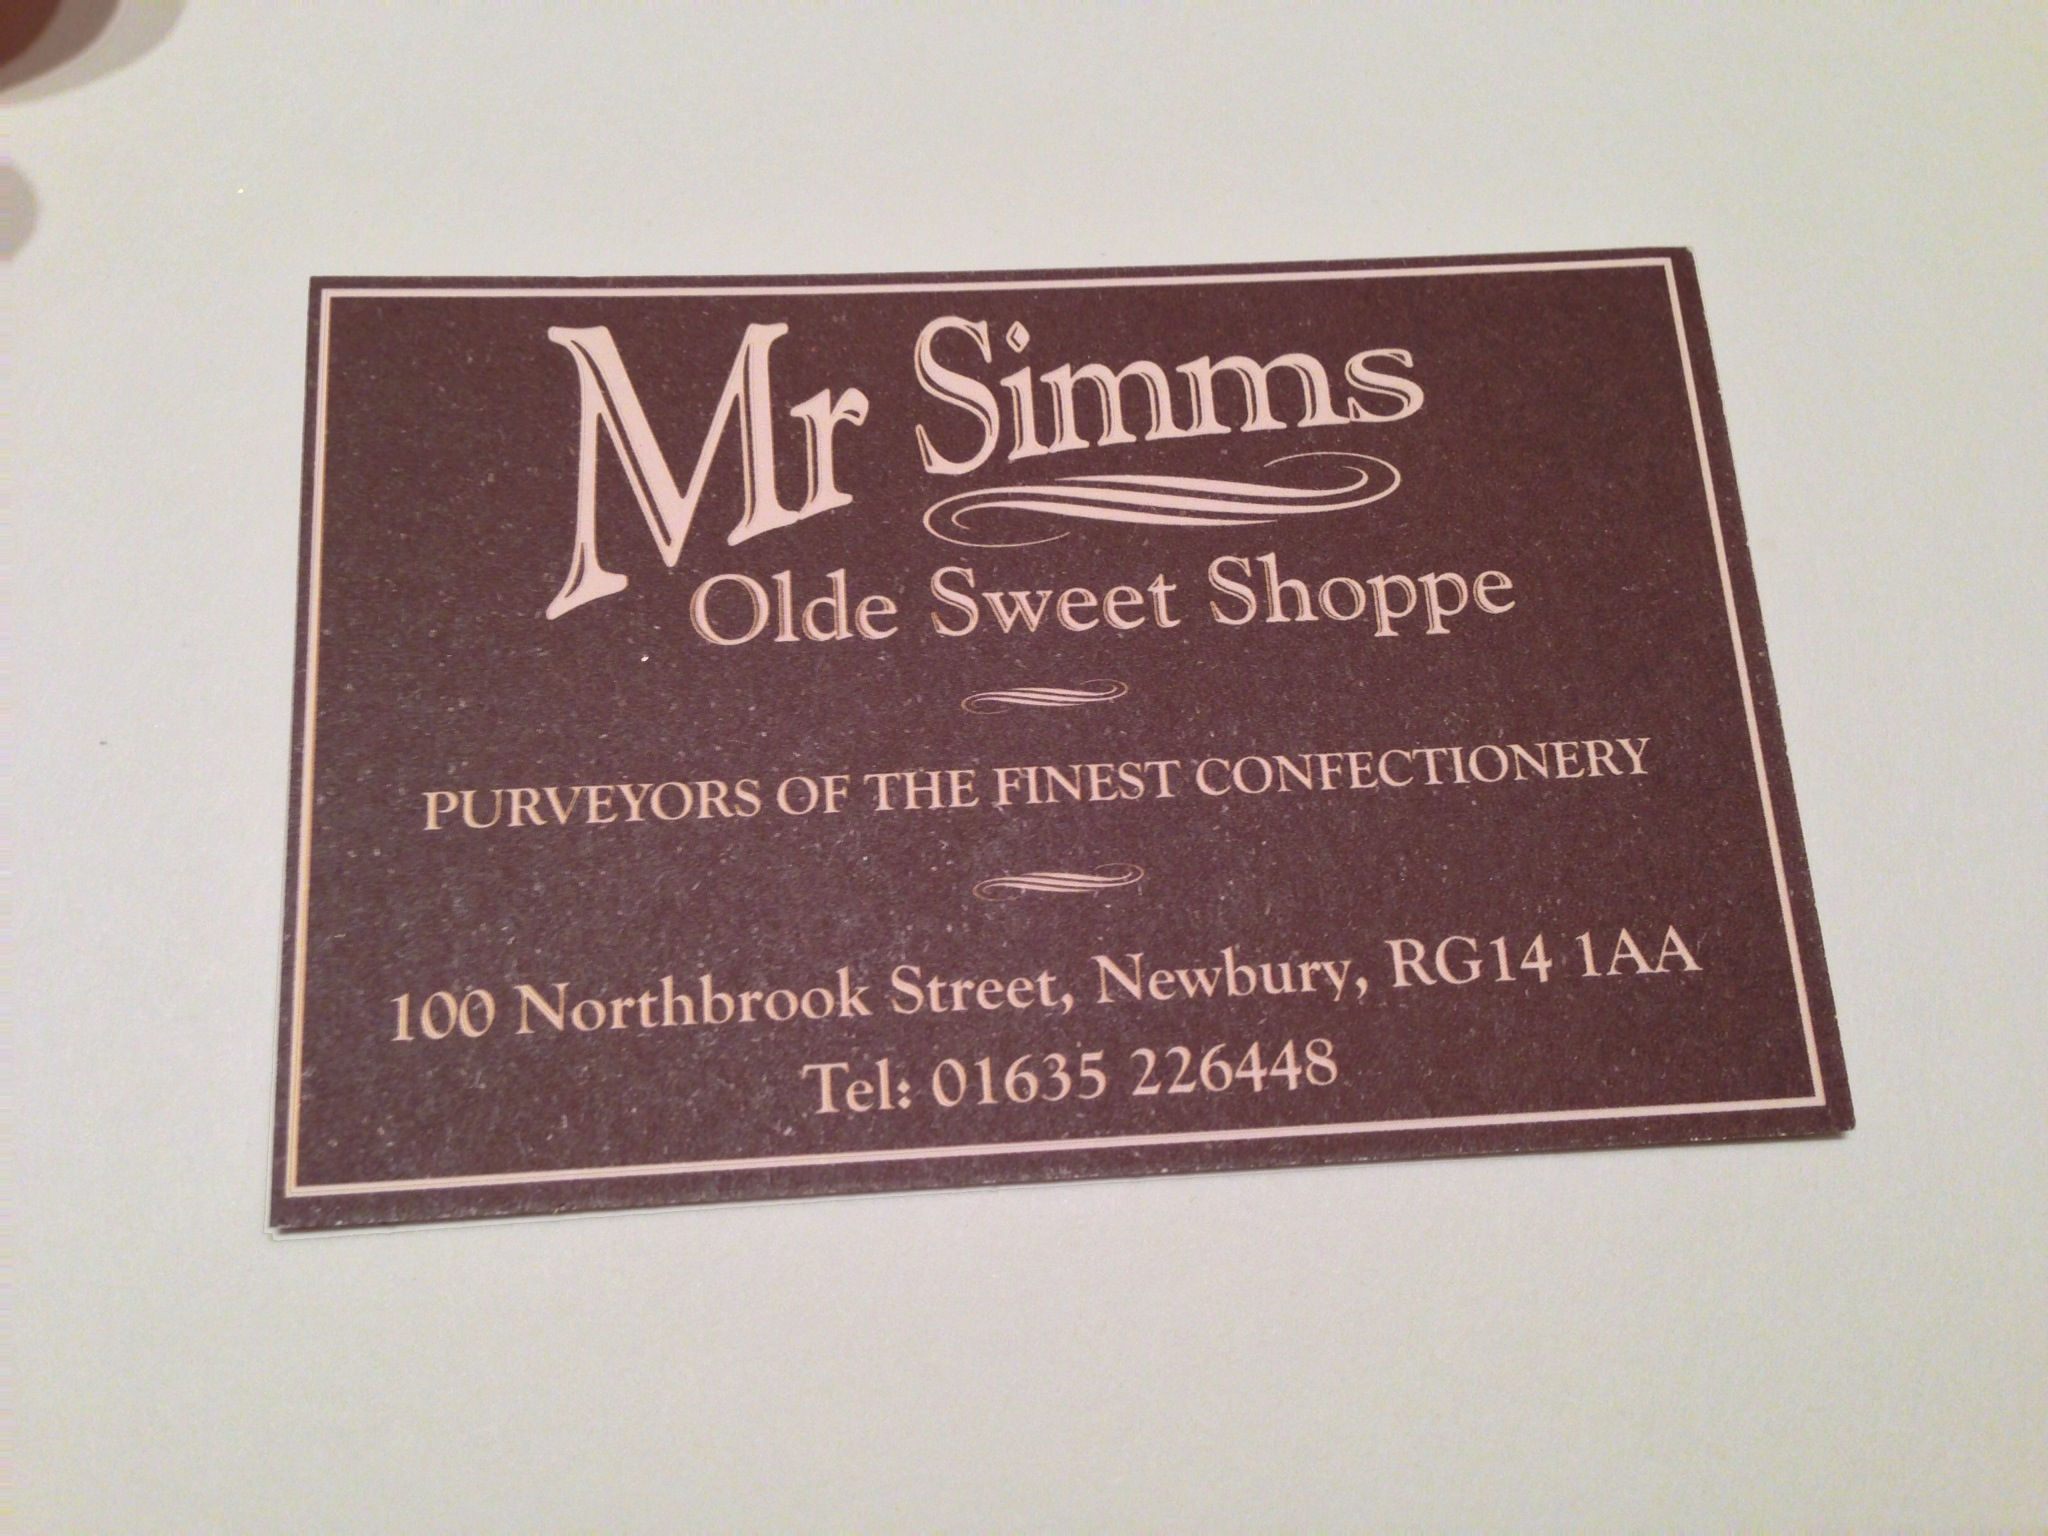 The label from the candy shop where the bar was purchased. I get to visit Newbury in March!